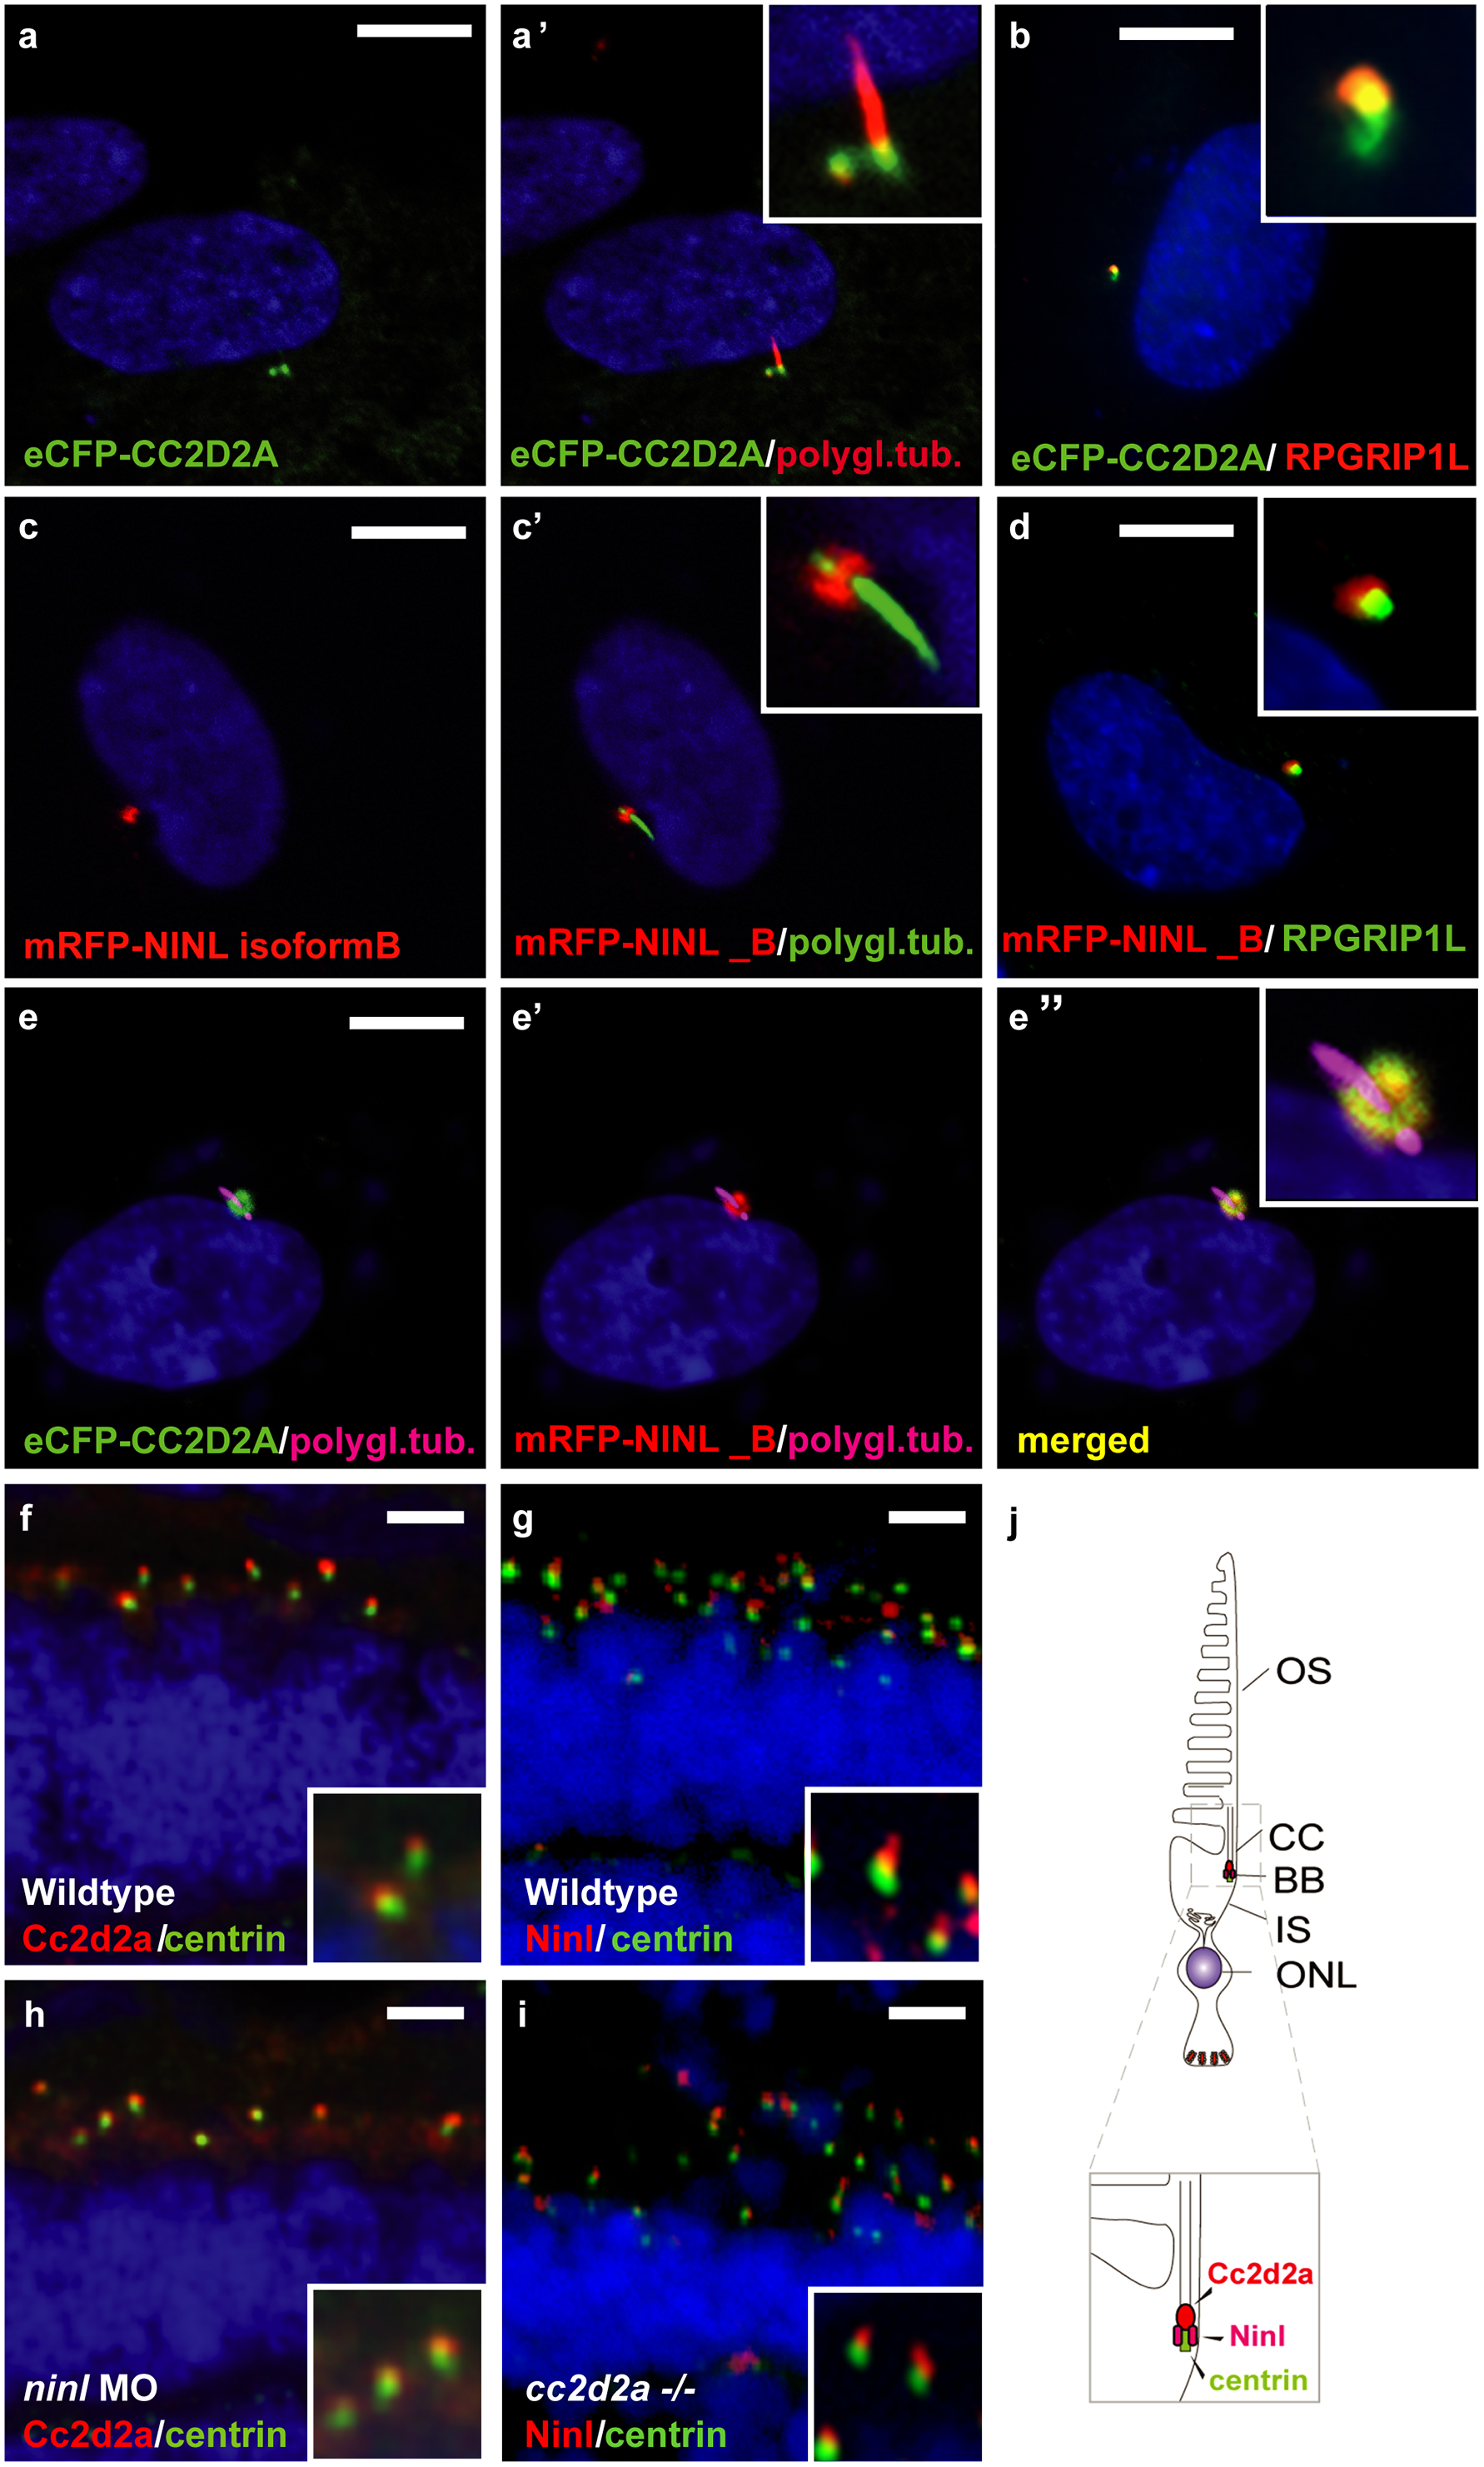 CC2D2A and NINL co-localize at the ciliary base in hTERT-RPE1 cells and in zebrafish retina.